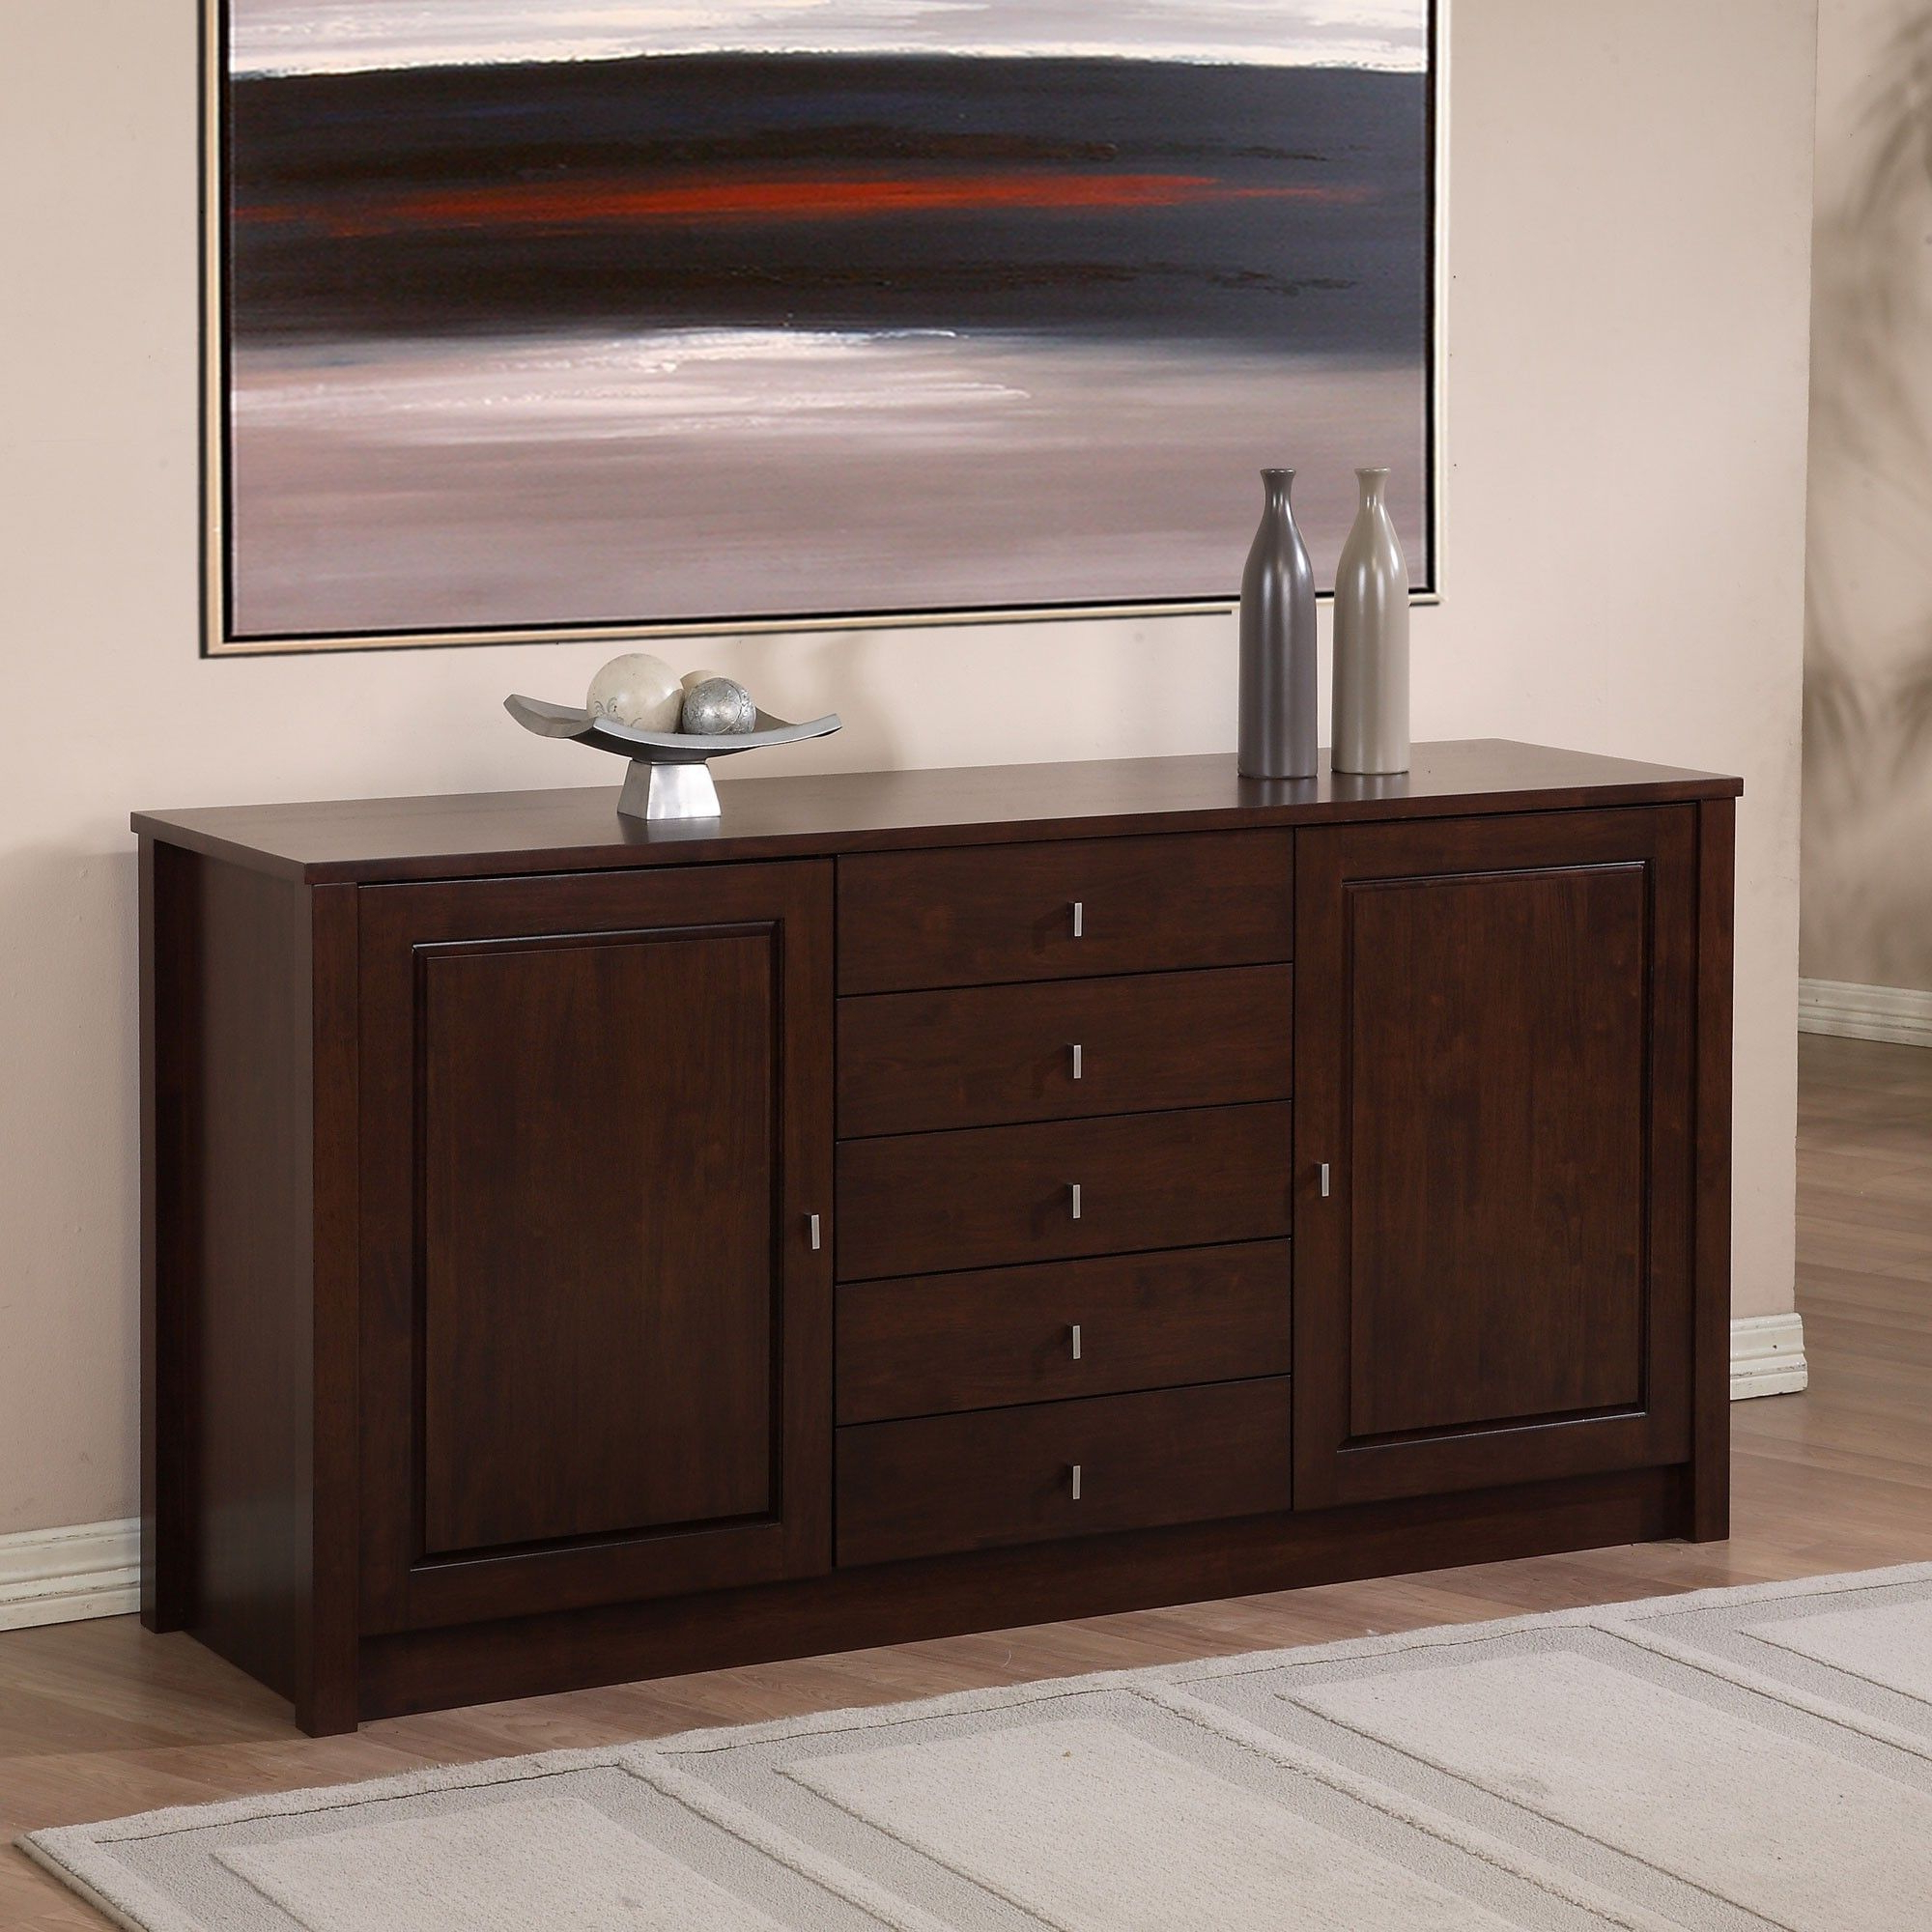 2020 With Nickel Finish Hardware Accenting A Unique Wenge Finish Intended For Tribeca Sideboards (View 1 of 20)